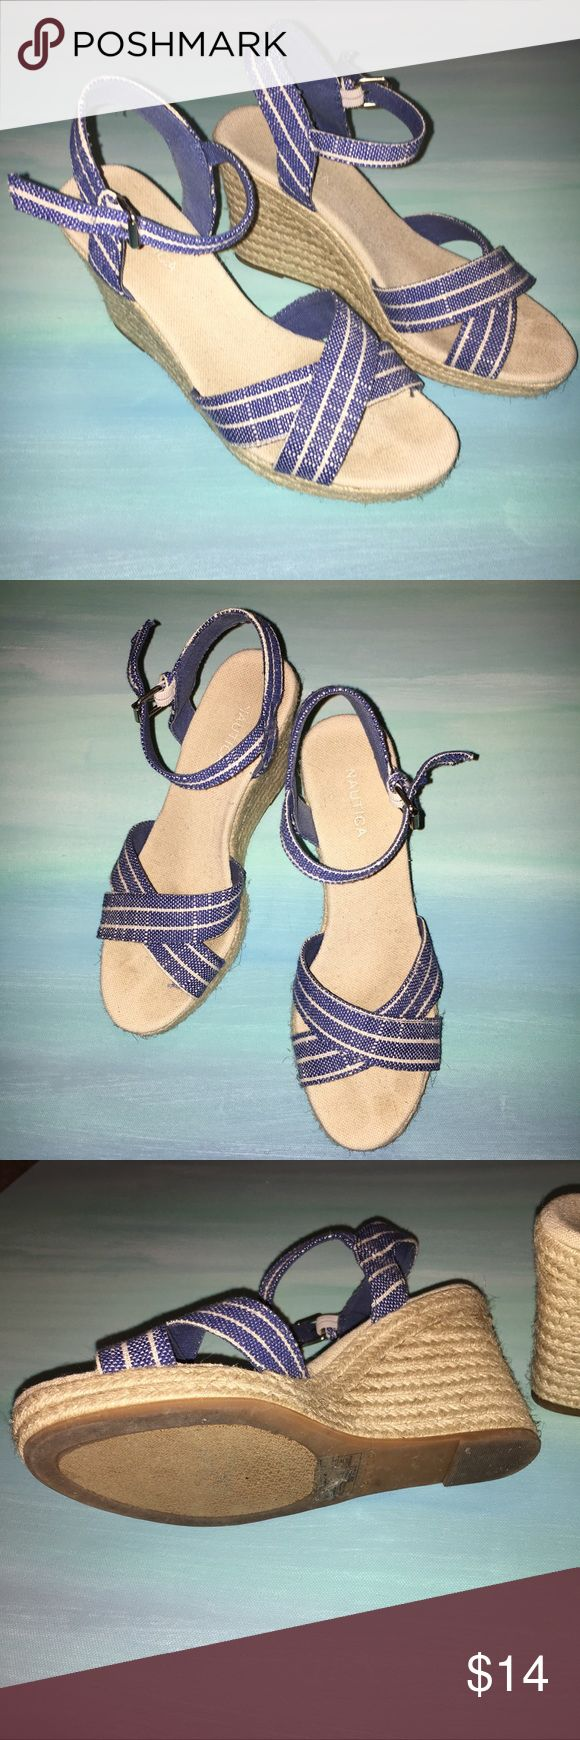 Nautica Blue 7.5 Wedge Espadrilles Sandals Canvas Worn once sadly not my size. In great shape. Nautical blue and white wedges Nautica Shoes Espadrilles